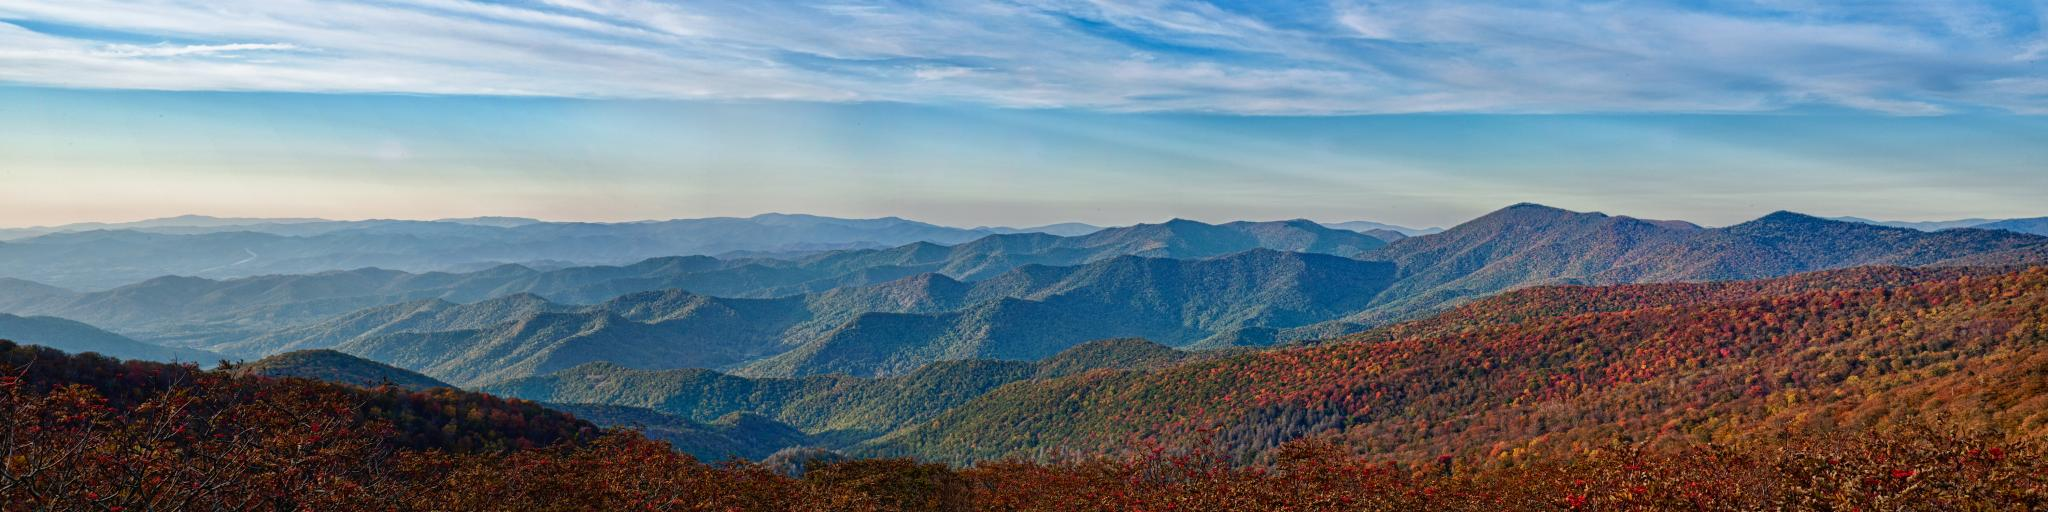 A panorama over the mountain landscape in the fall from the Blue Ridge Parkway in North Carolina